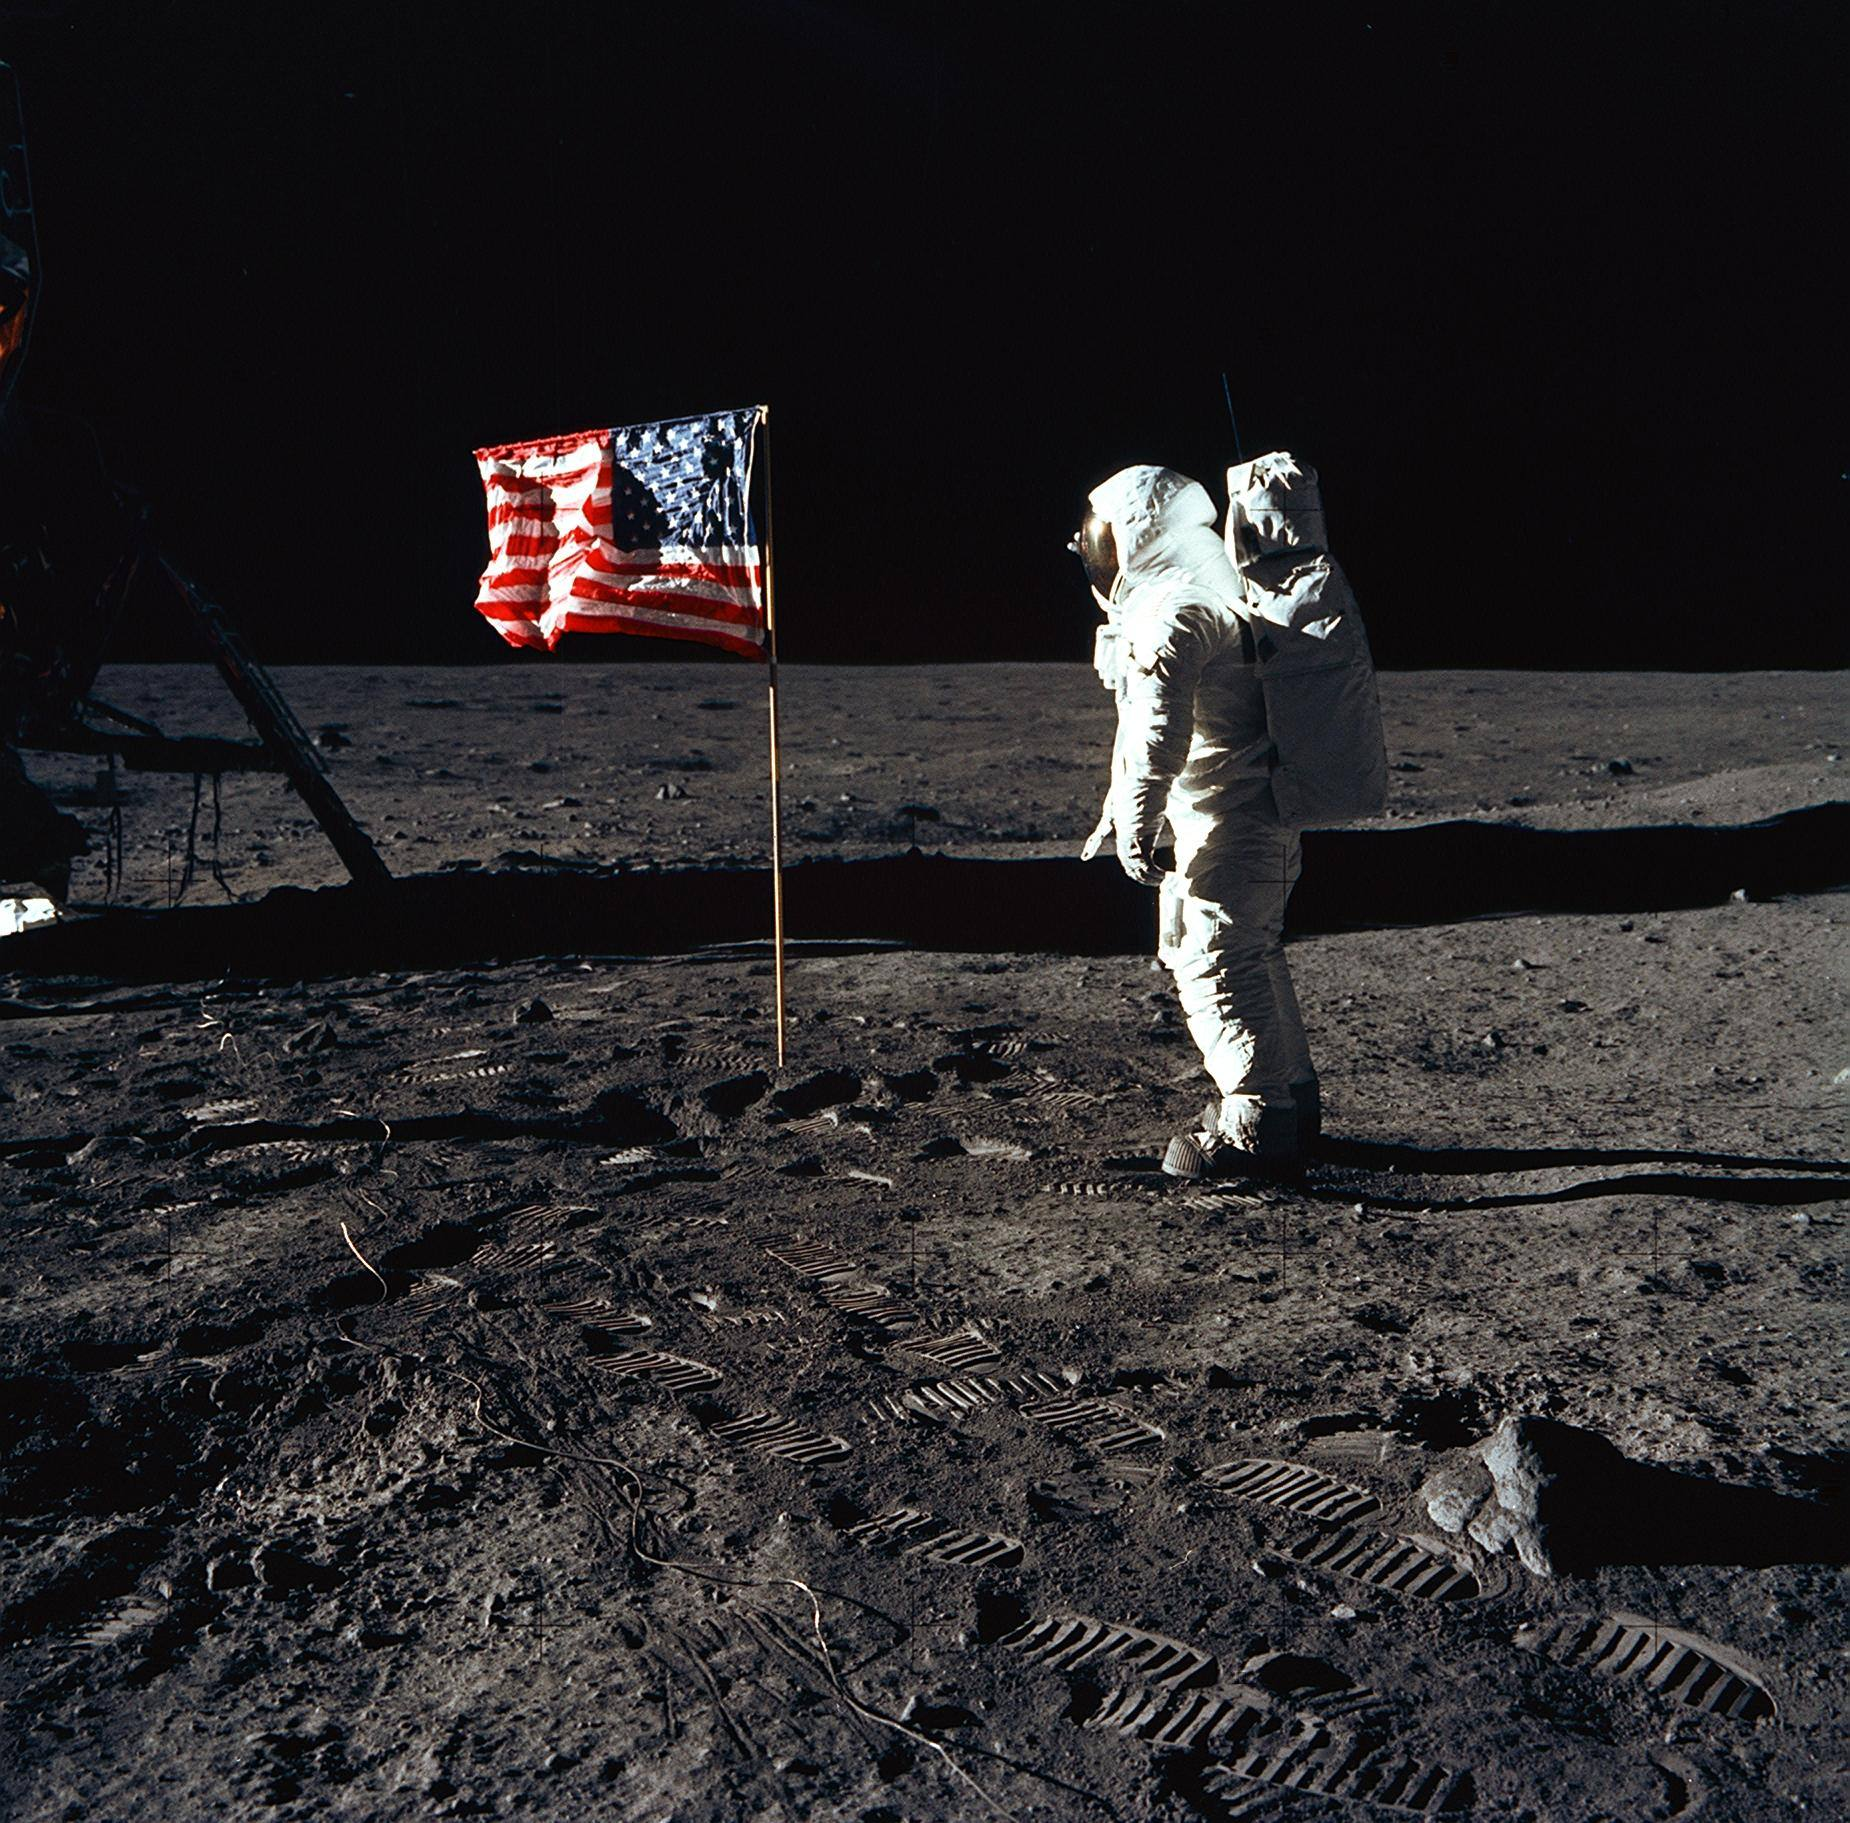 Apollo 11 Buzz Aldrin salutes the US flag on the Moon